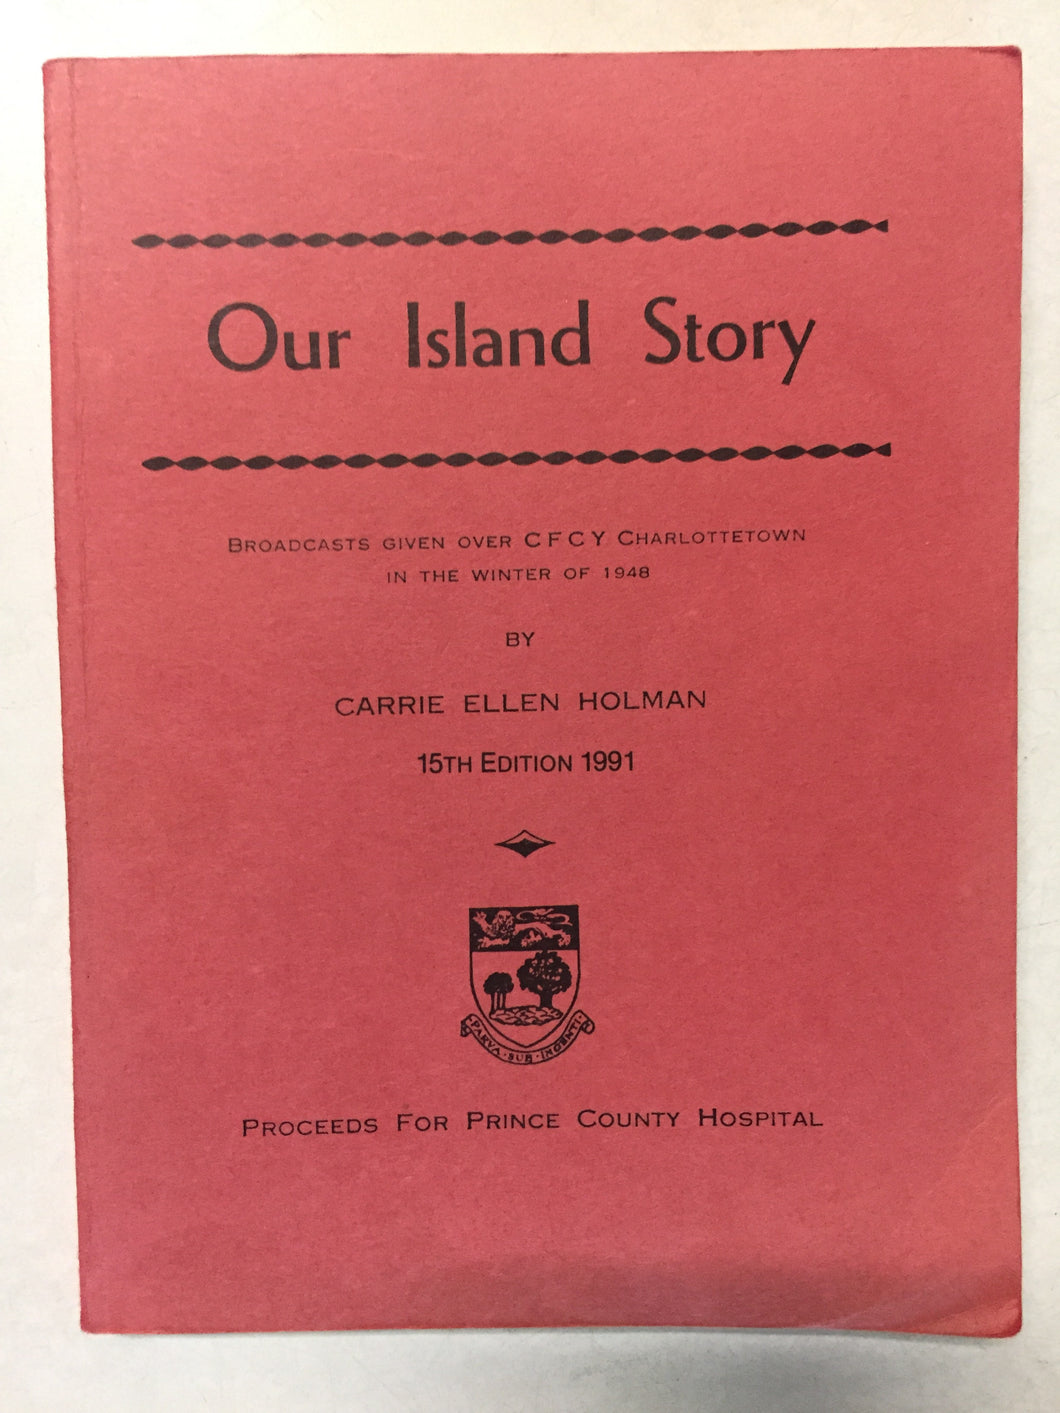 Our Island Story Broadcast Over CFCY Charlottetown in the Winter of 1948 - Slickcatbooks